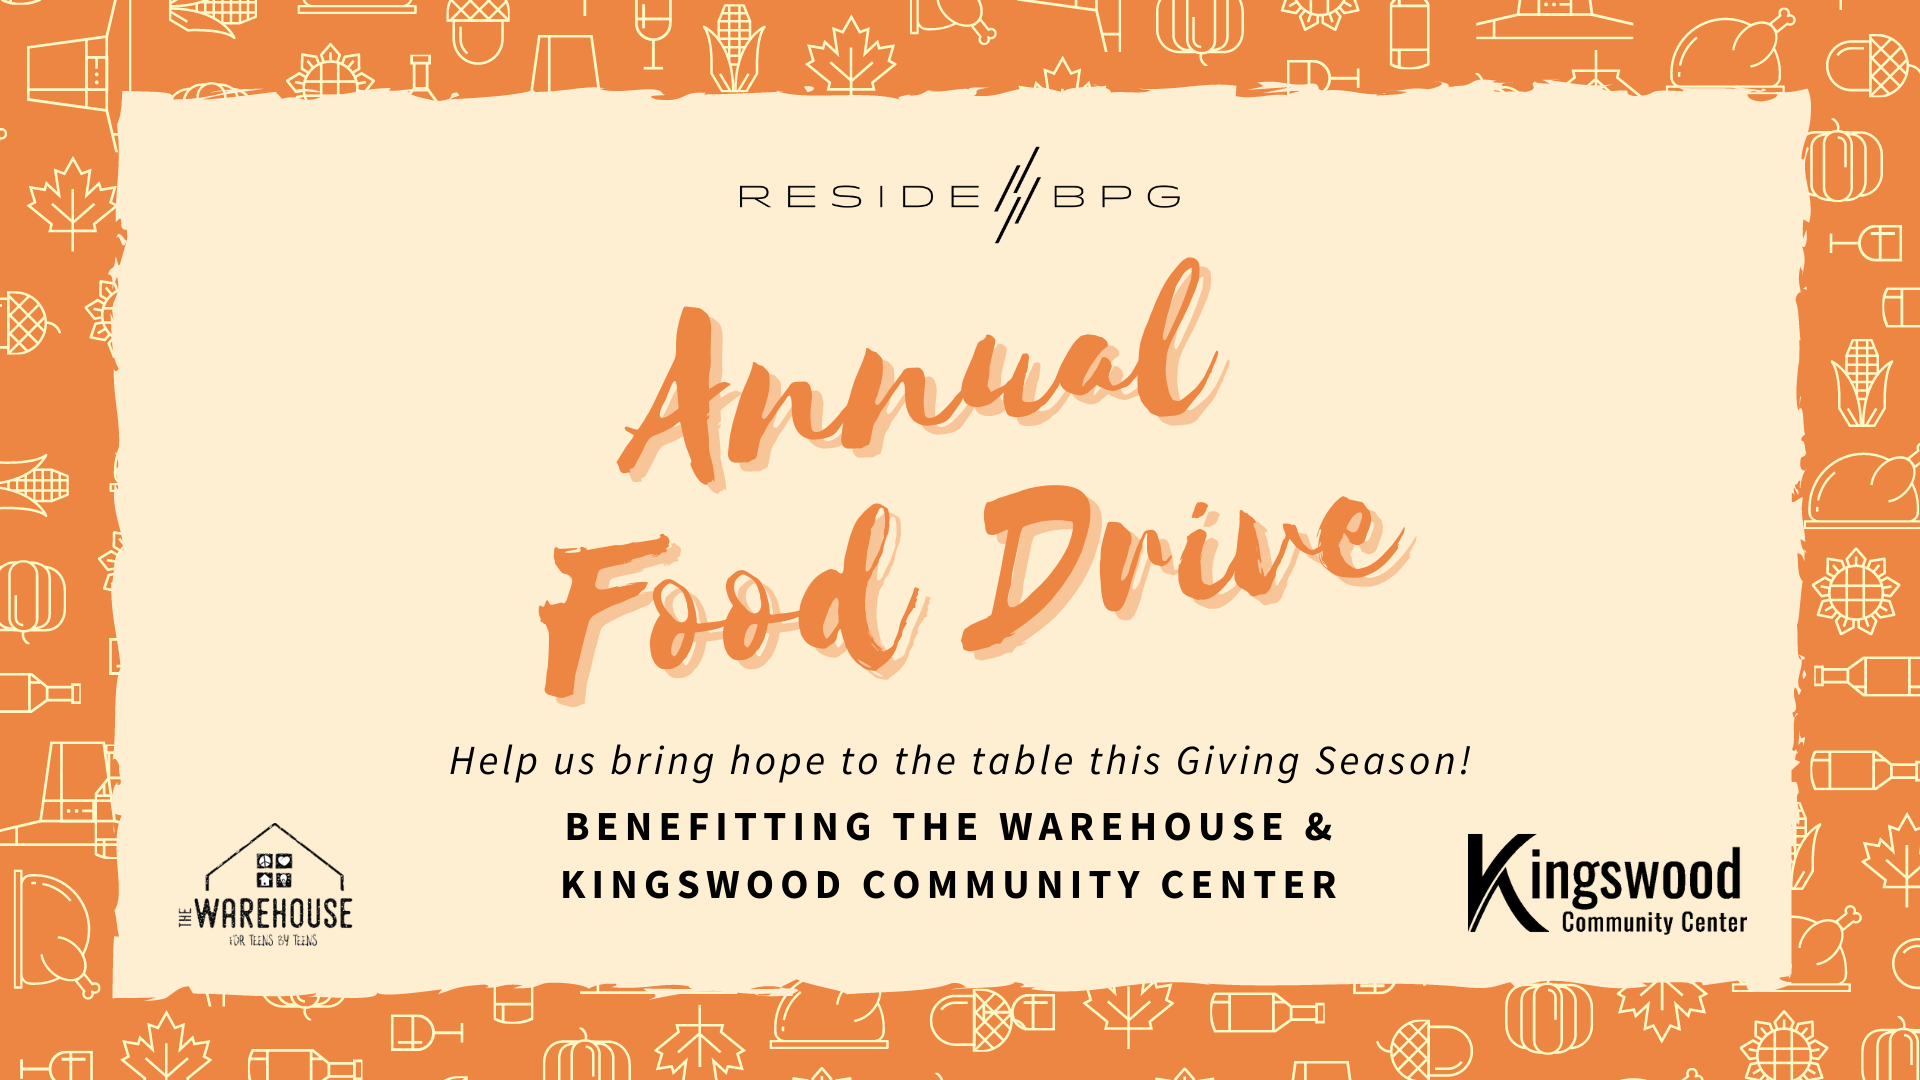 Bring Hope to the Table: ResideBPG Annual Food Drive